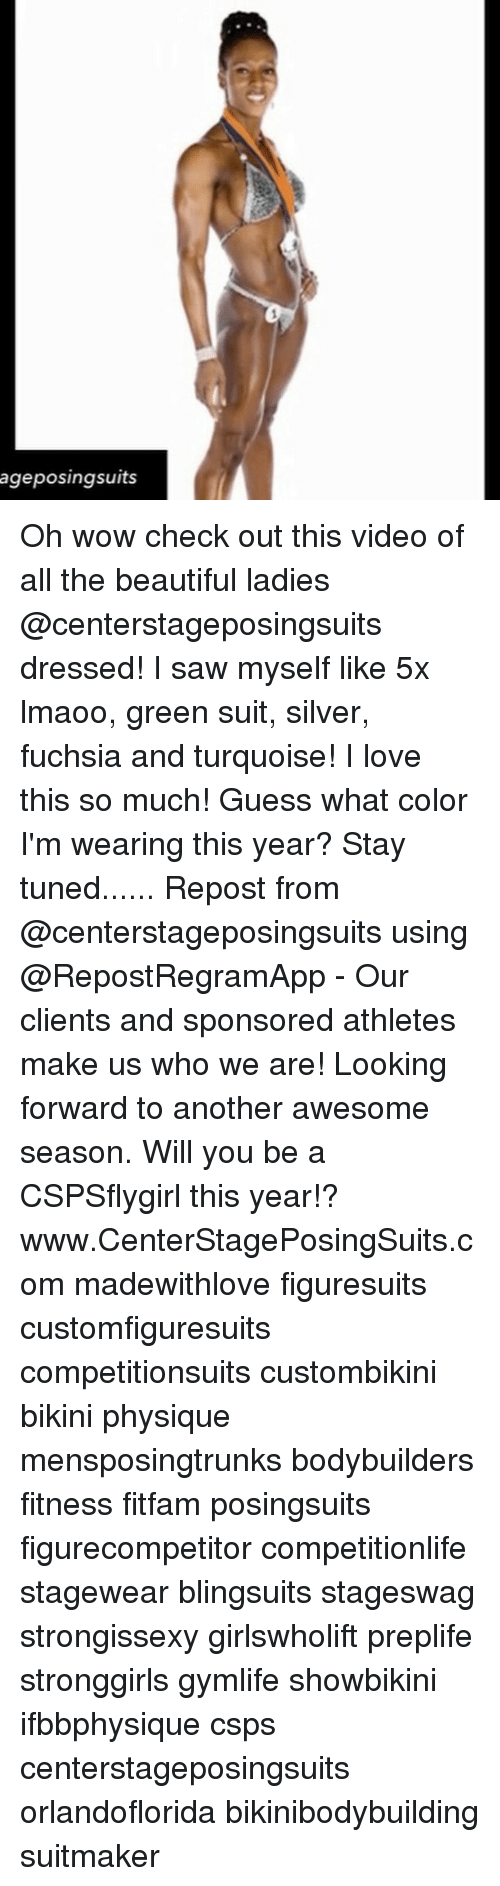 beauty lady: ageposingsuits Oh wow check out this video of all the beautiful ladies @centerstageposingsuits dressed! I saw myself like 5x lmaoo, green suit, silver, fuchsia and turquoise! I love this so much! Guess what color I'm wearing this year? Stay tuned...... Repost from @centerstageposingsuits using @RepostRegramApp - Our clients and sponsored athletes make us who we are! Looking forward to another awesome season. Will you be a CSPSflygirl this year!? www.CenterStagePosingSuits.com madewithlove figuresuits customfiguresuits competitionsuits custombikini bikini physique mensposingtrunks bodybuilders fitness fitfam posingsuits figurecompetitor competitionlife stagewear blingsuits stageswag strongissexy girlswholift preplife stronggirls gymlife showbikini ifbbphysique csps centerstageposingsuits orlandoflorida bikinibodybuilding suitmaker